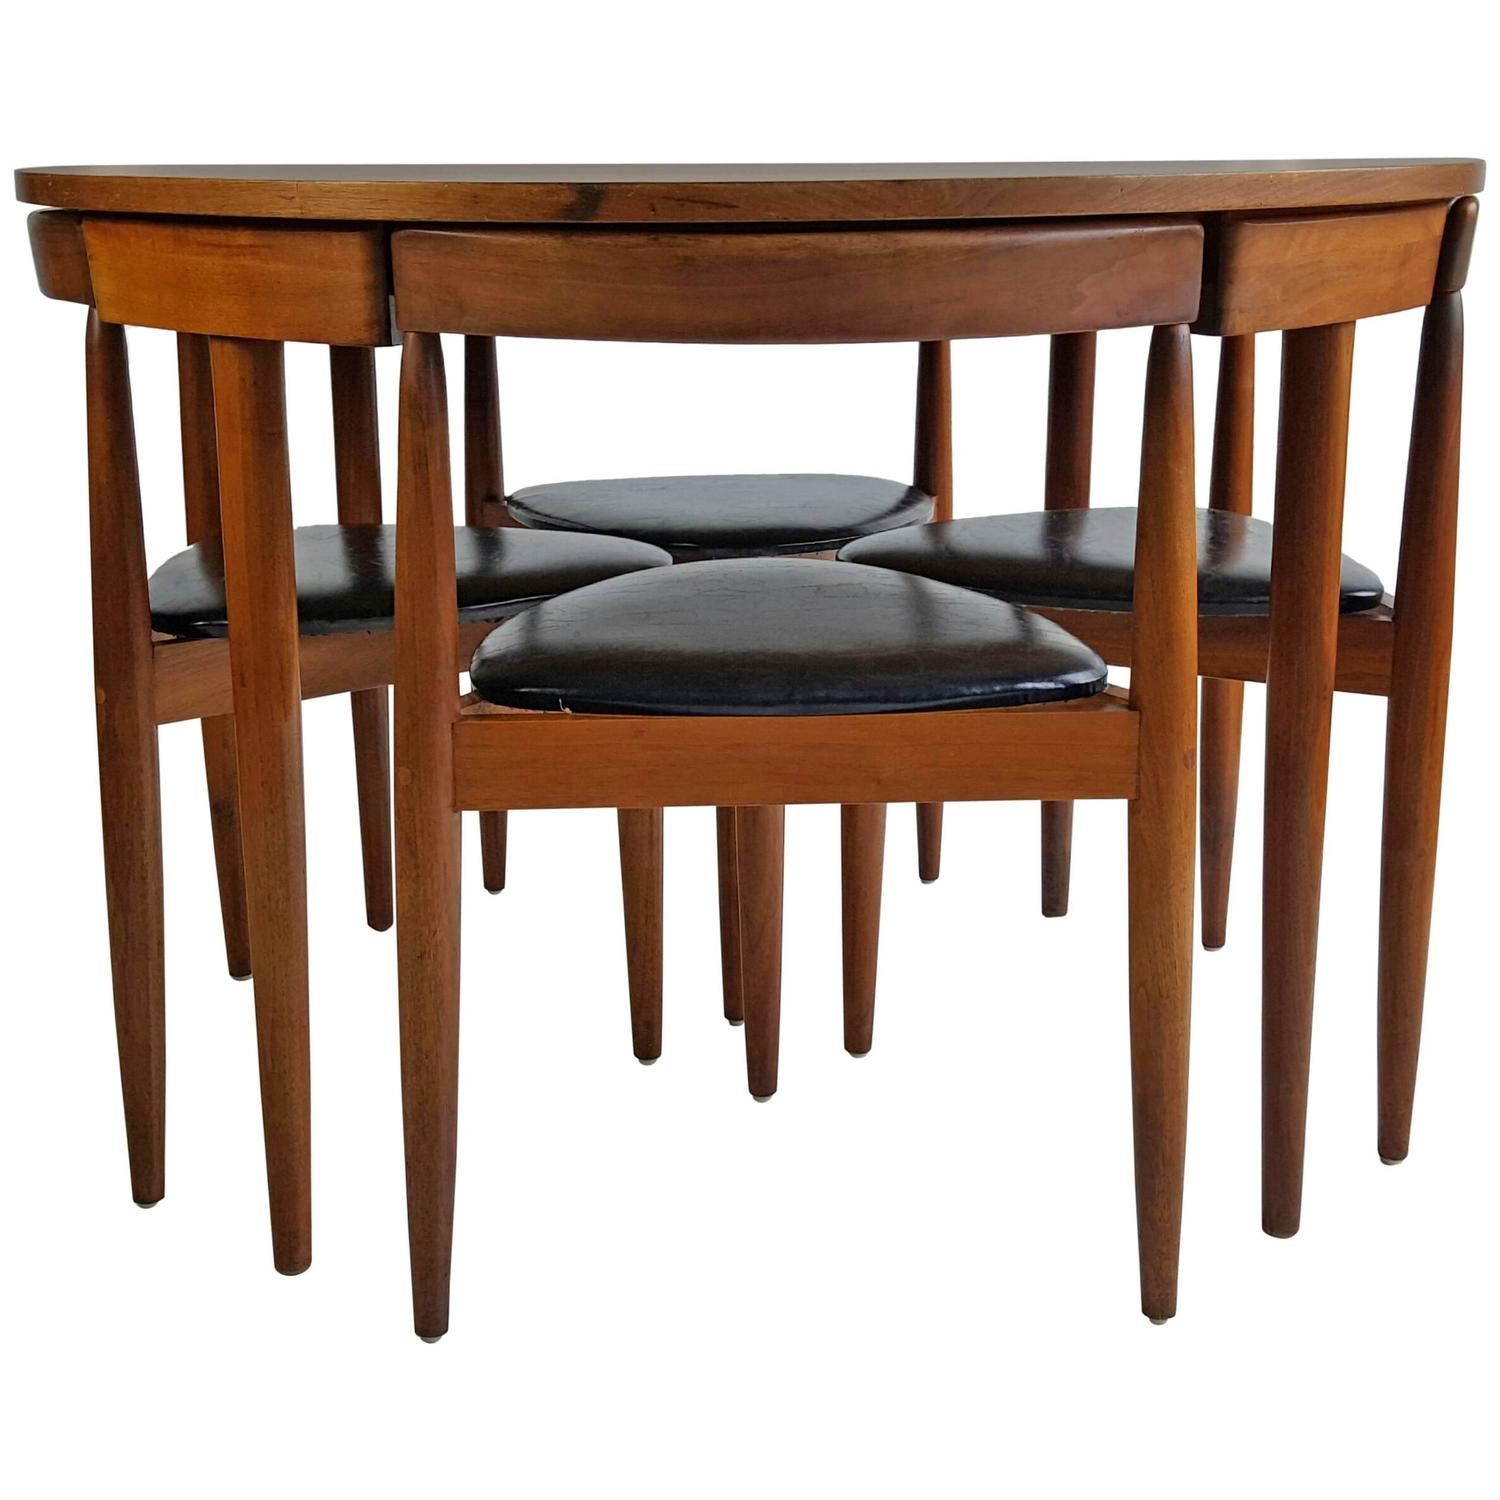 Mid century modern dining table four chairs hans olsen for Modern dining table and chairs set